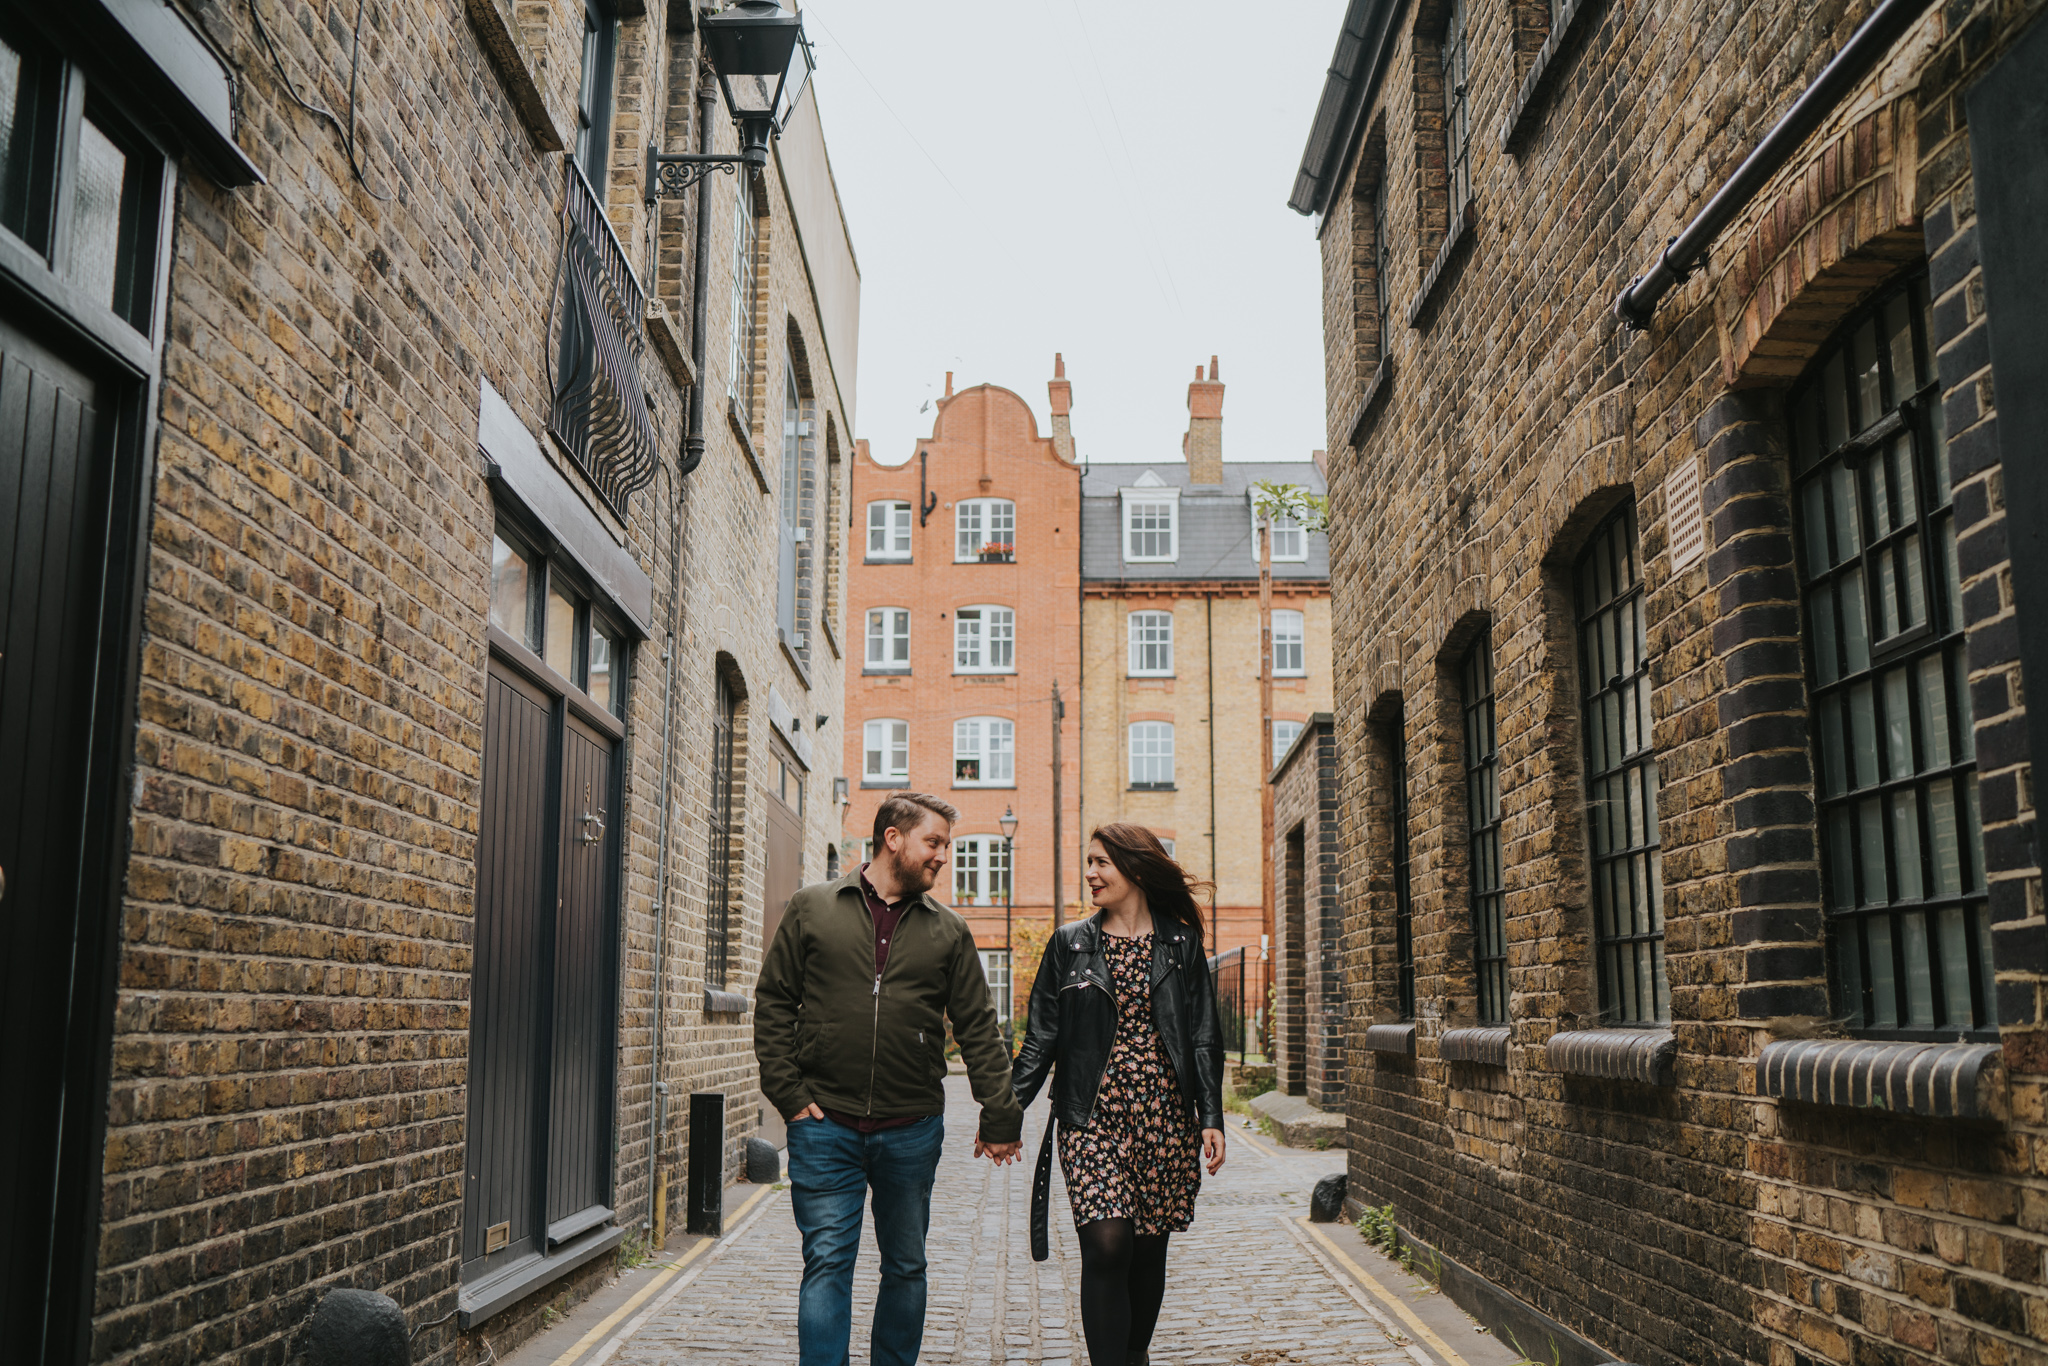 natalie-john-urban-london-engagement-grace-elizabeth-colchester-essex-alternative-wedding-photographer-essex-suffolk-norfolk-devon (51 of 66).jpg